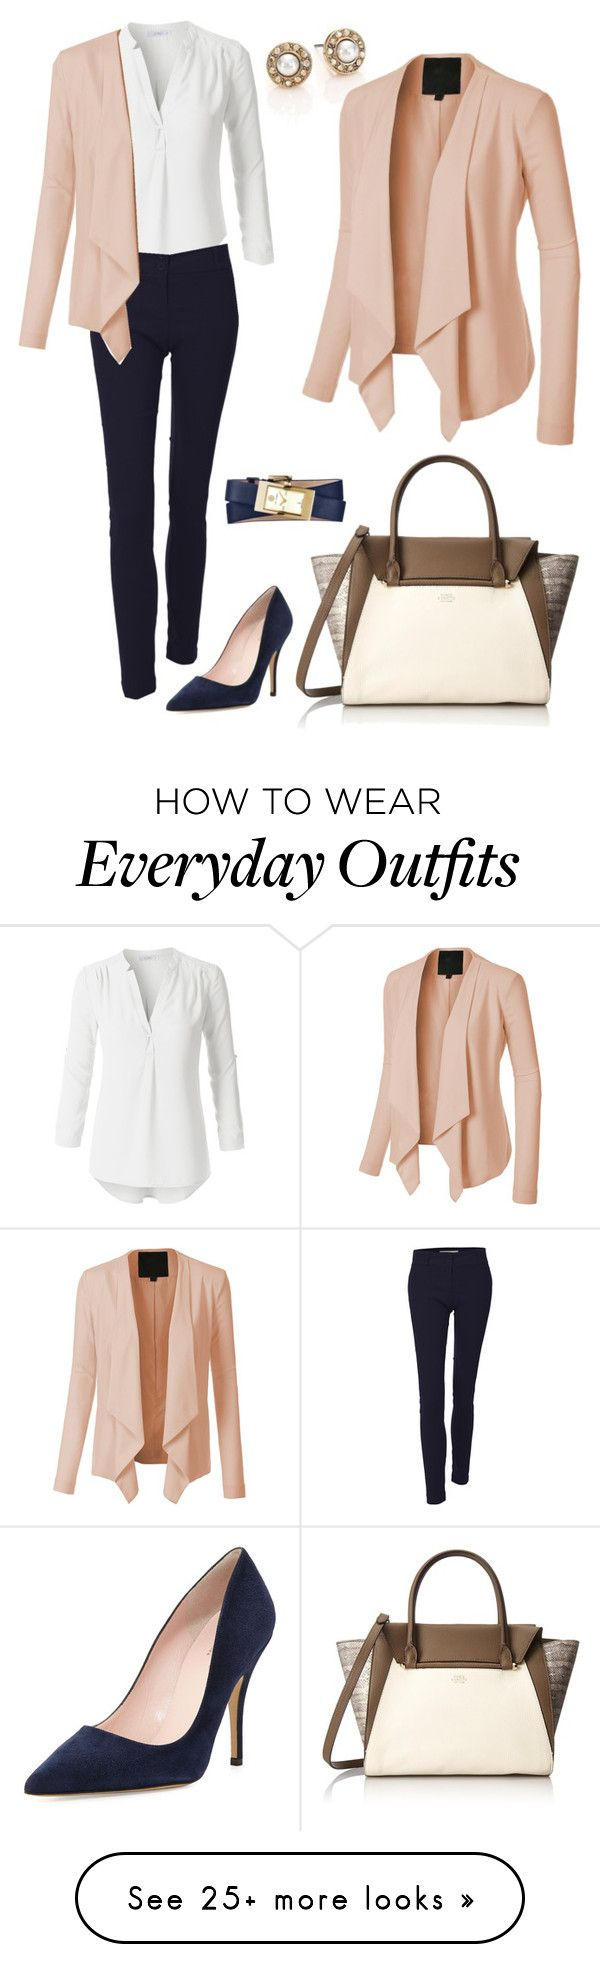 U0026quot;Everyday Work Outfitu0026quot; by le3noclothing on Polyvore featuring Oscar de la Renta Vince Camuto ...